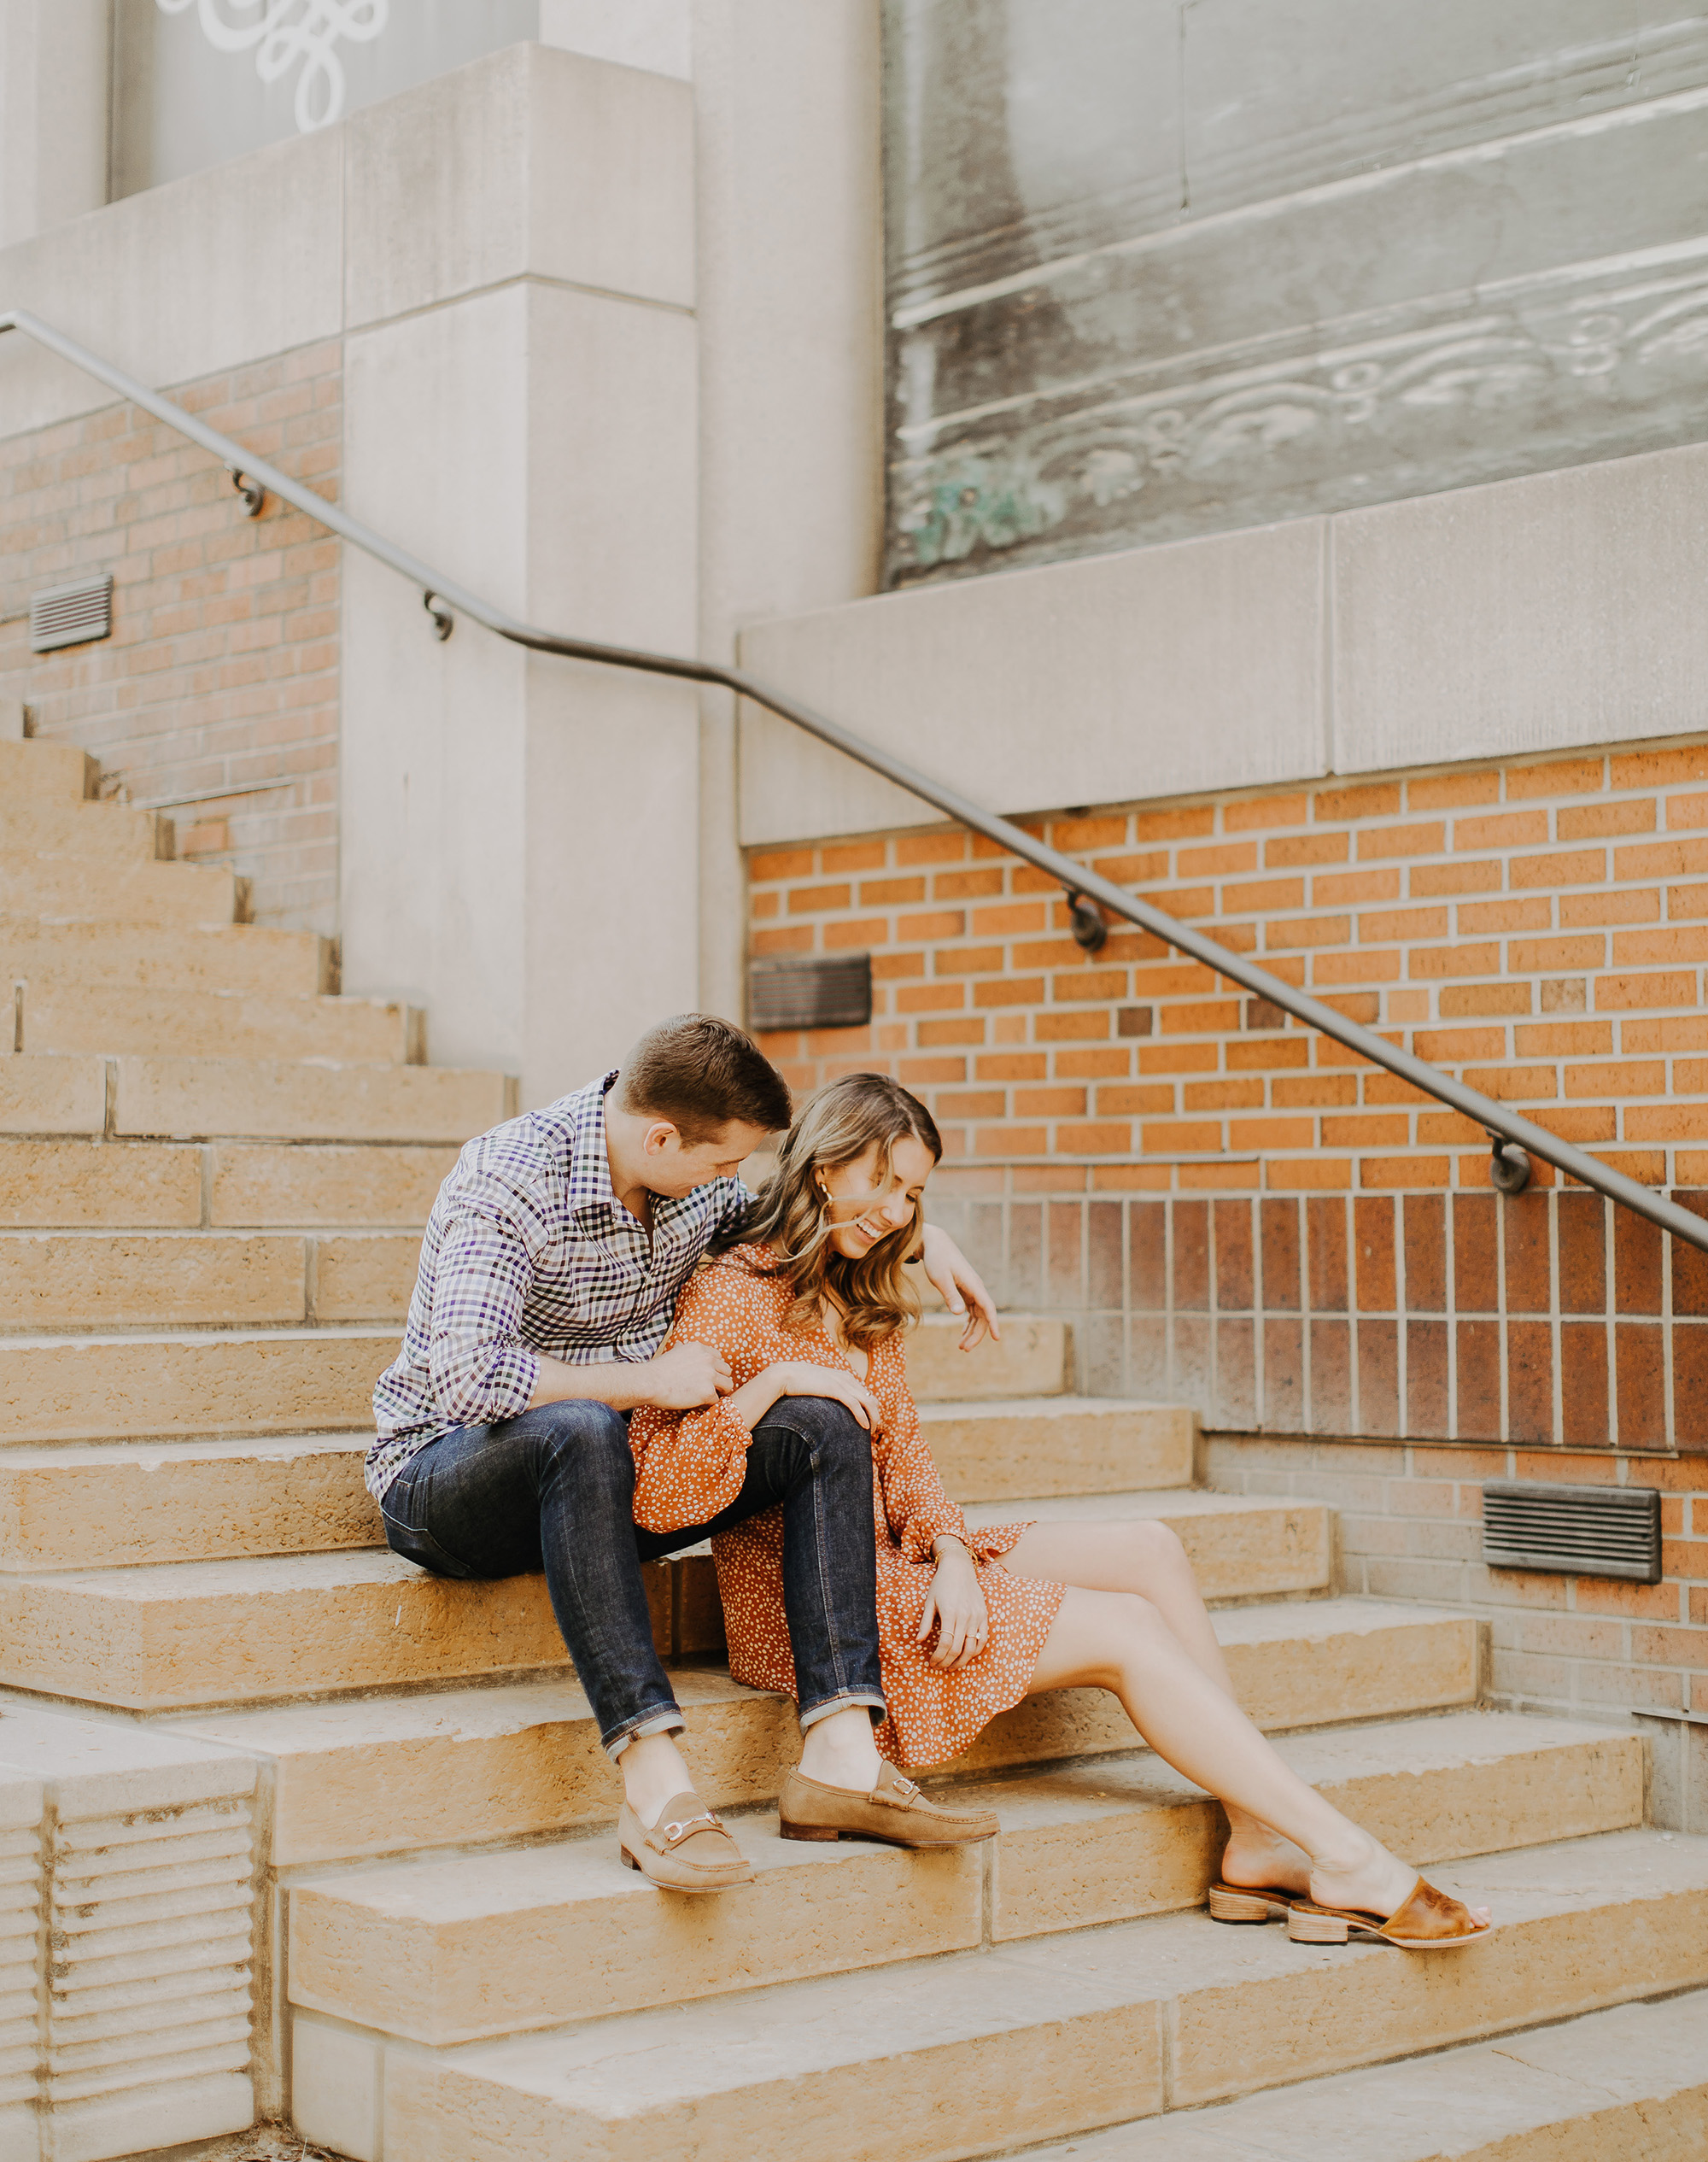 Wesley Goforth & Jaclyn Sheets's Kansas City Engagement Portraits by the Waldron Photograph Company.